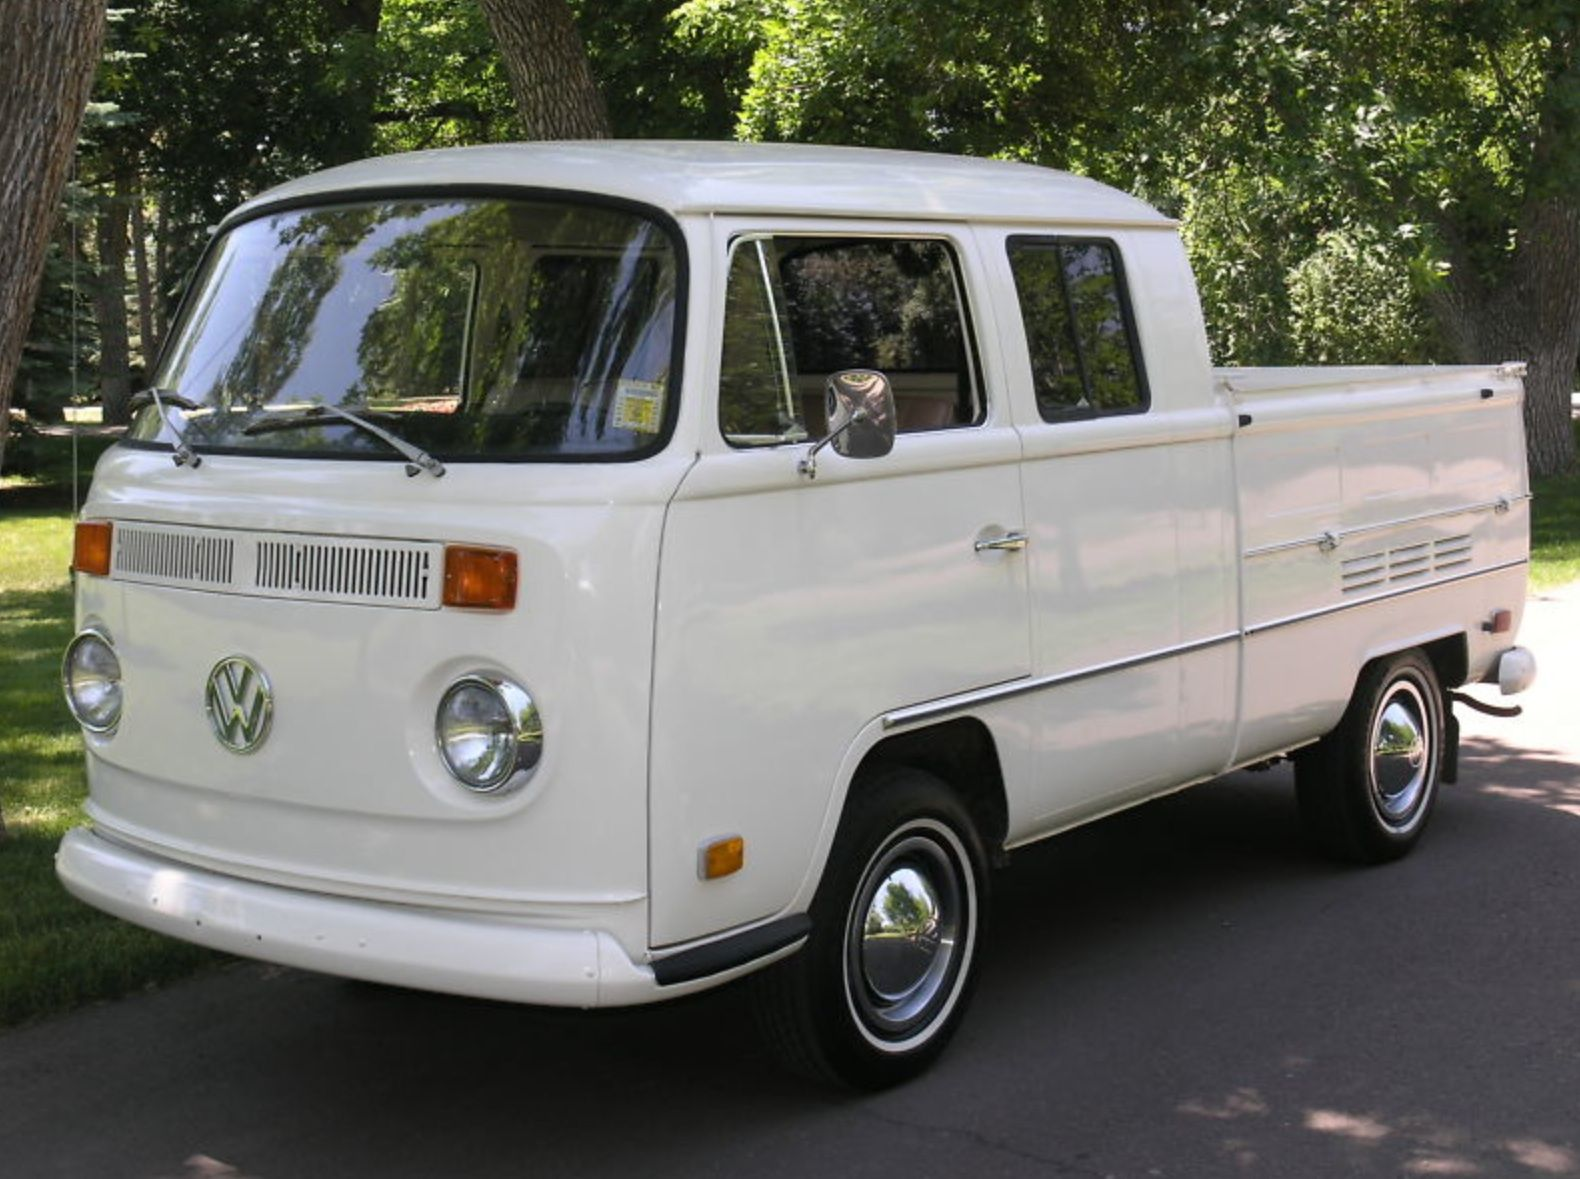 1970 vw double cab pickup white with tan only 44 original miles never restored never rusty runs and drives like new